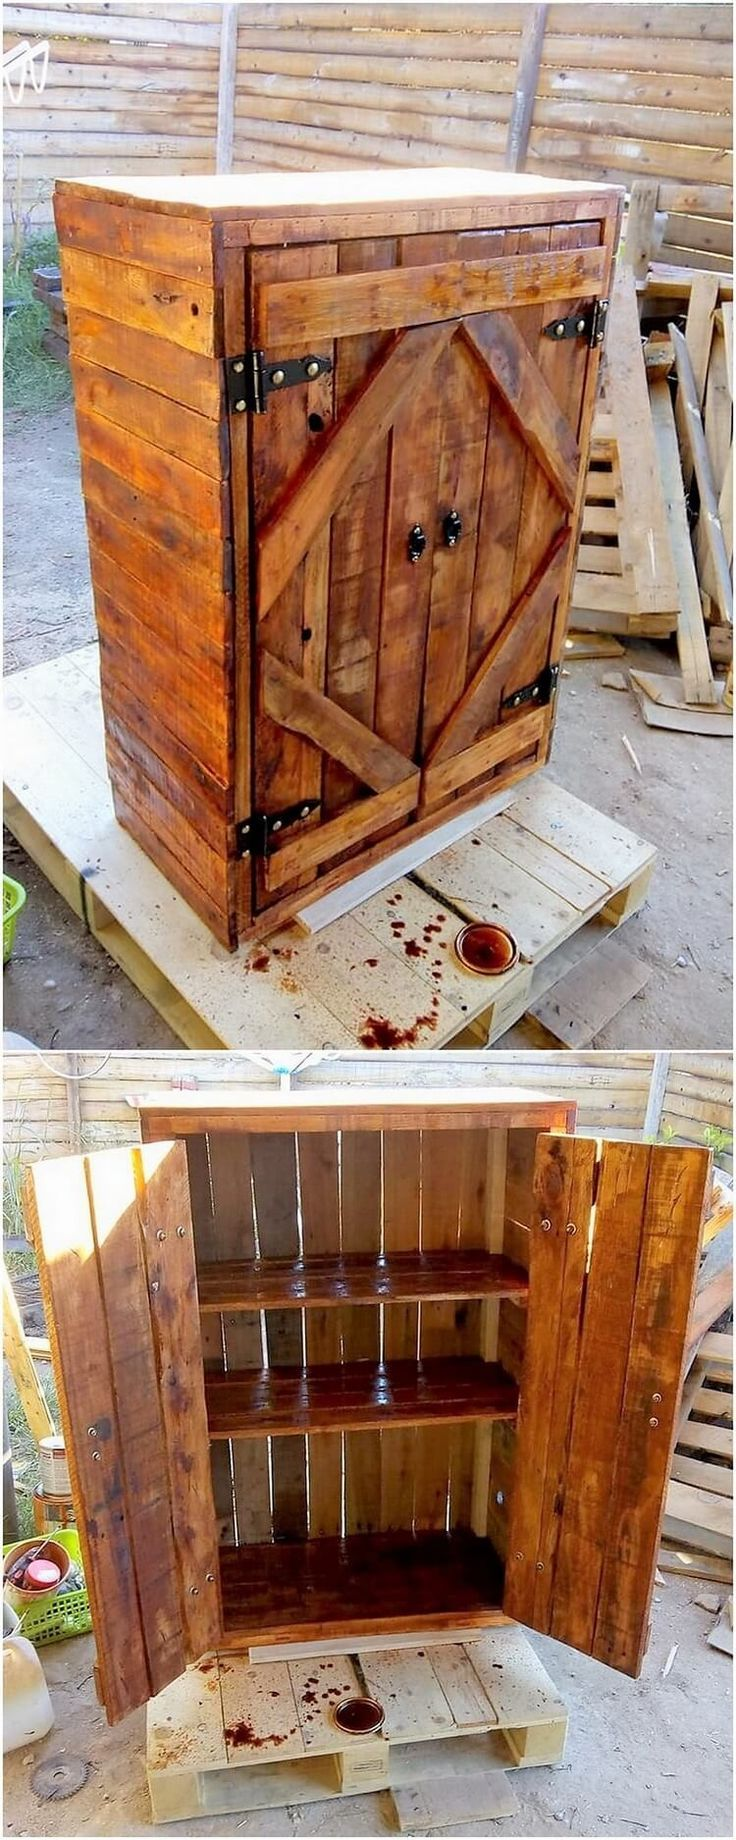 Perfect Pallet Ideas And Projects That Are Easy To Make And Sell Easy Wood Craft Ideas To Sell Easy Wood Project Easy Wood Projects Pallet Diy Wood Pallets